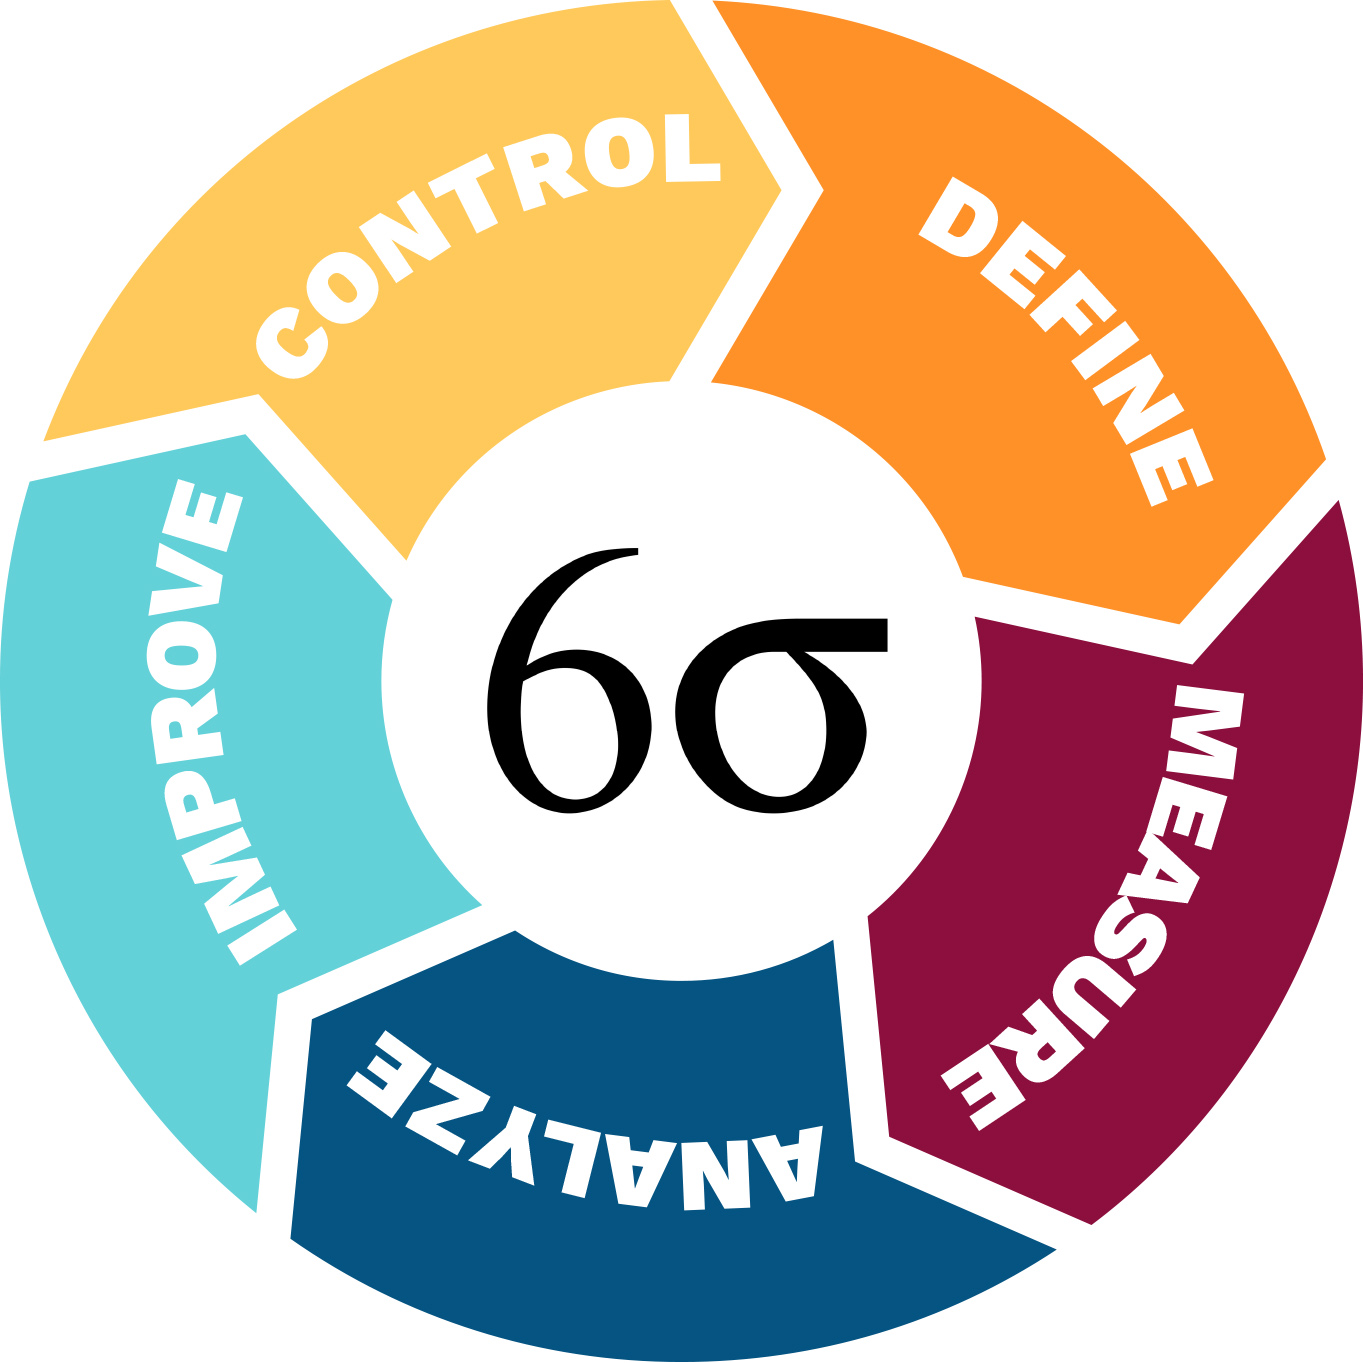 sigma six belt dmaic process lean green methodology sixsigma project circle certification manufacturing graph approach quality projects improve wesleyan processes